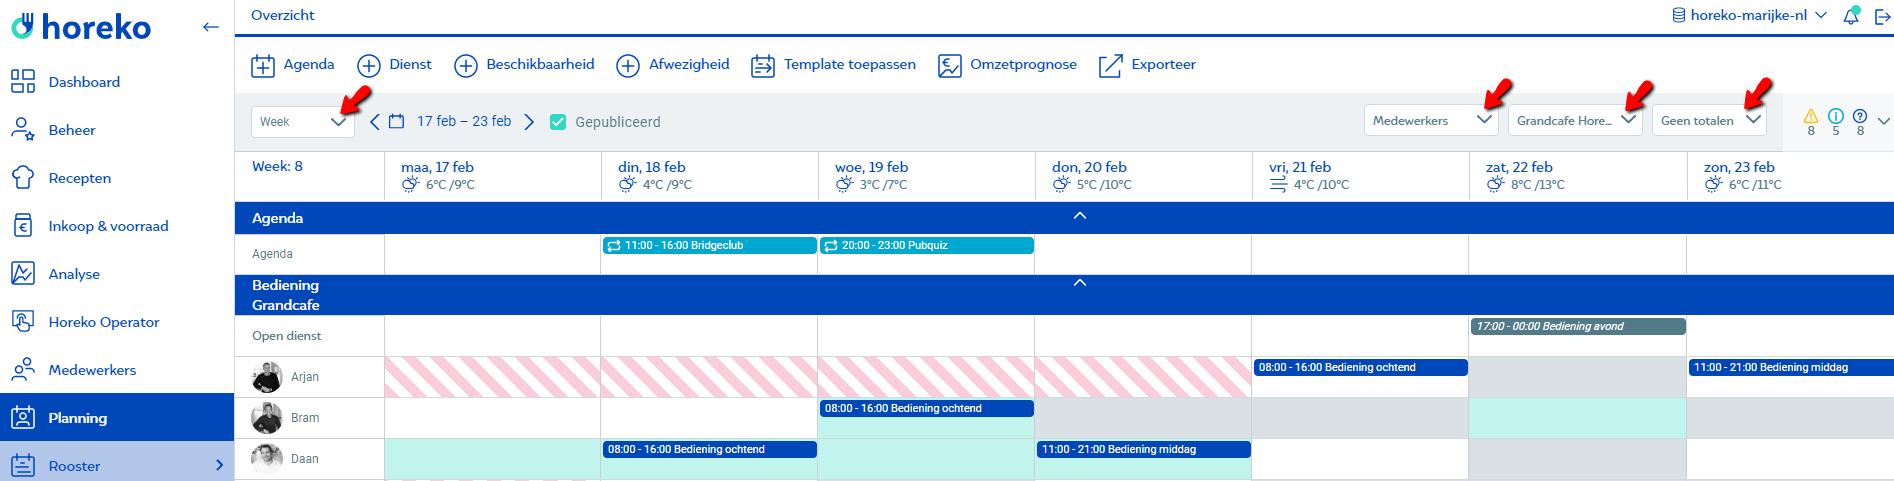 Rooster_weergaves